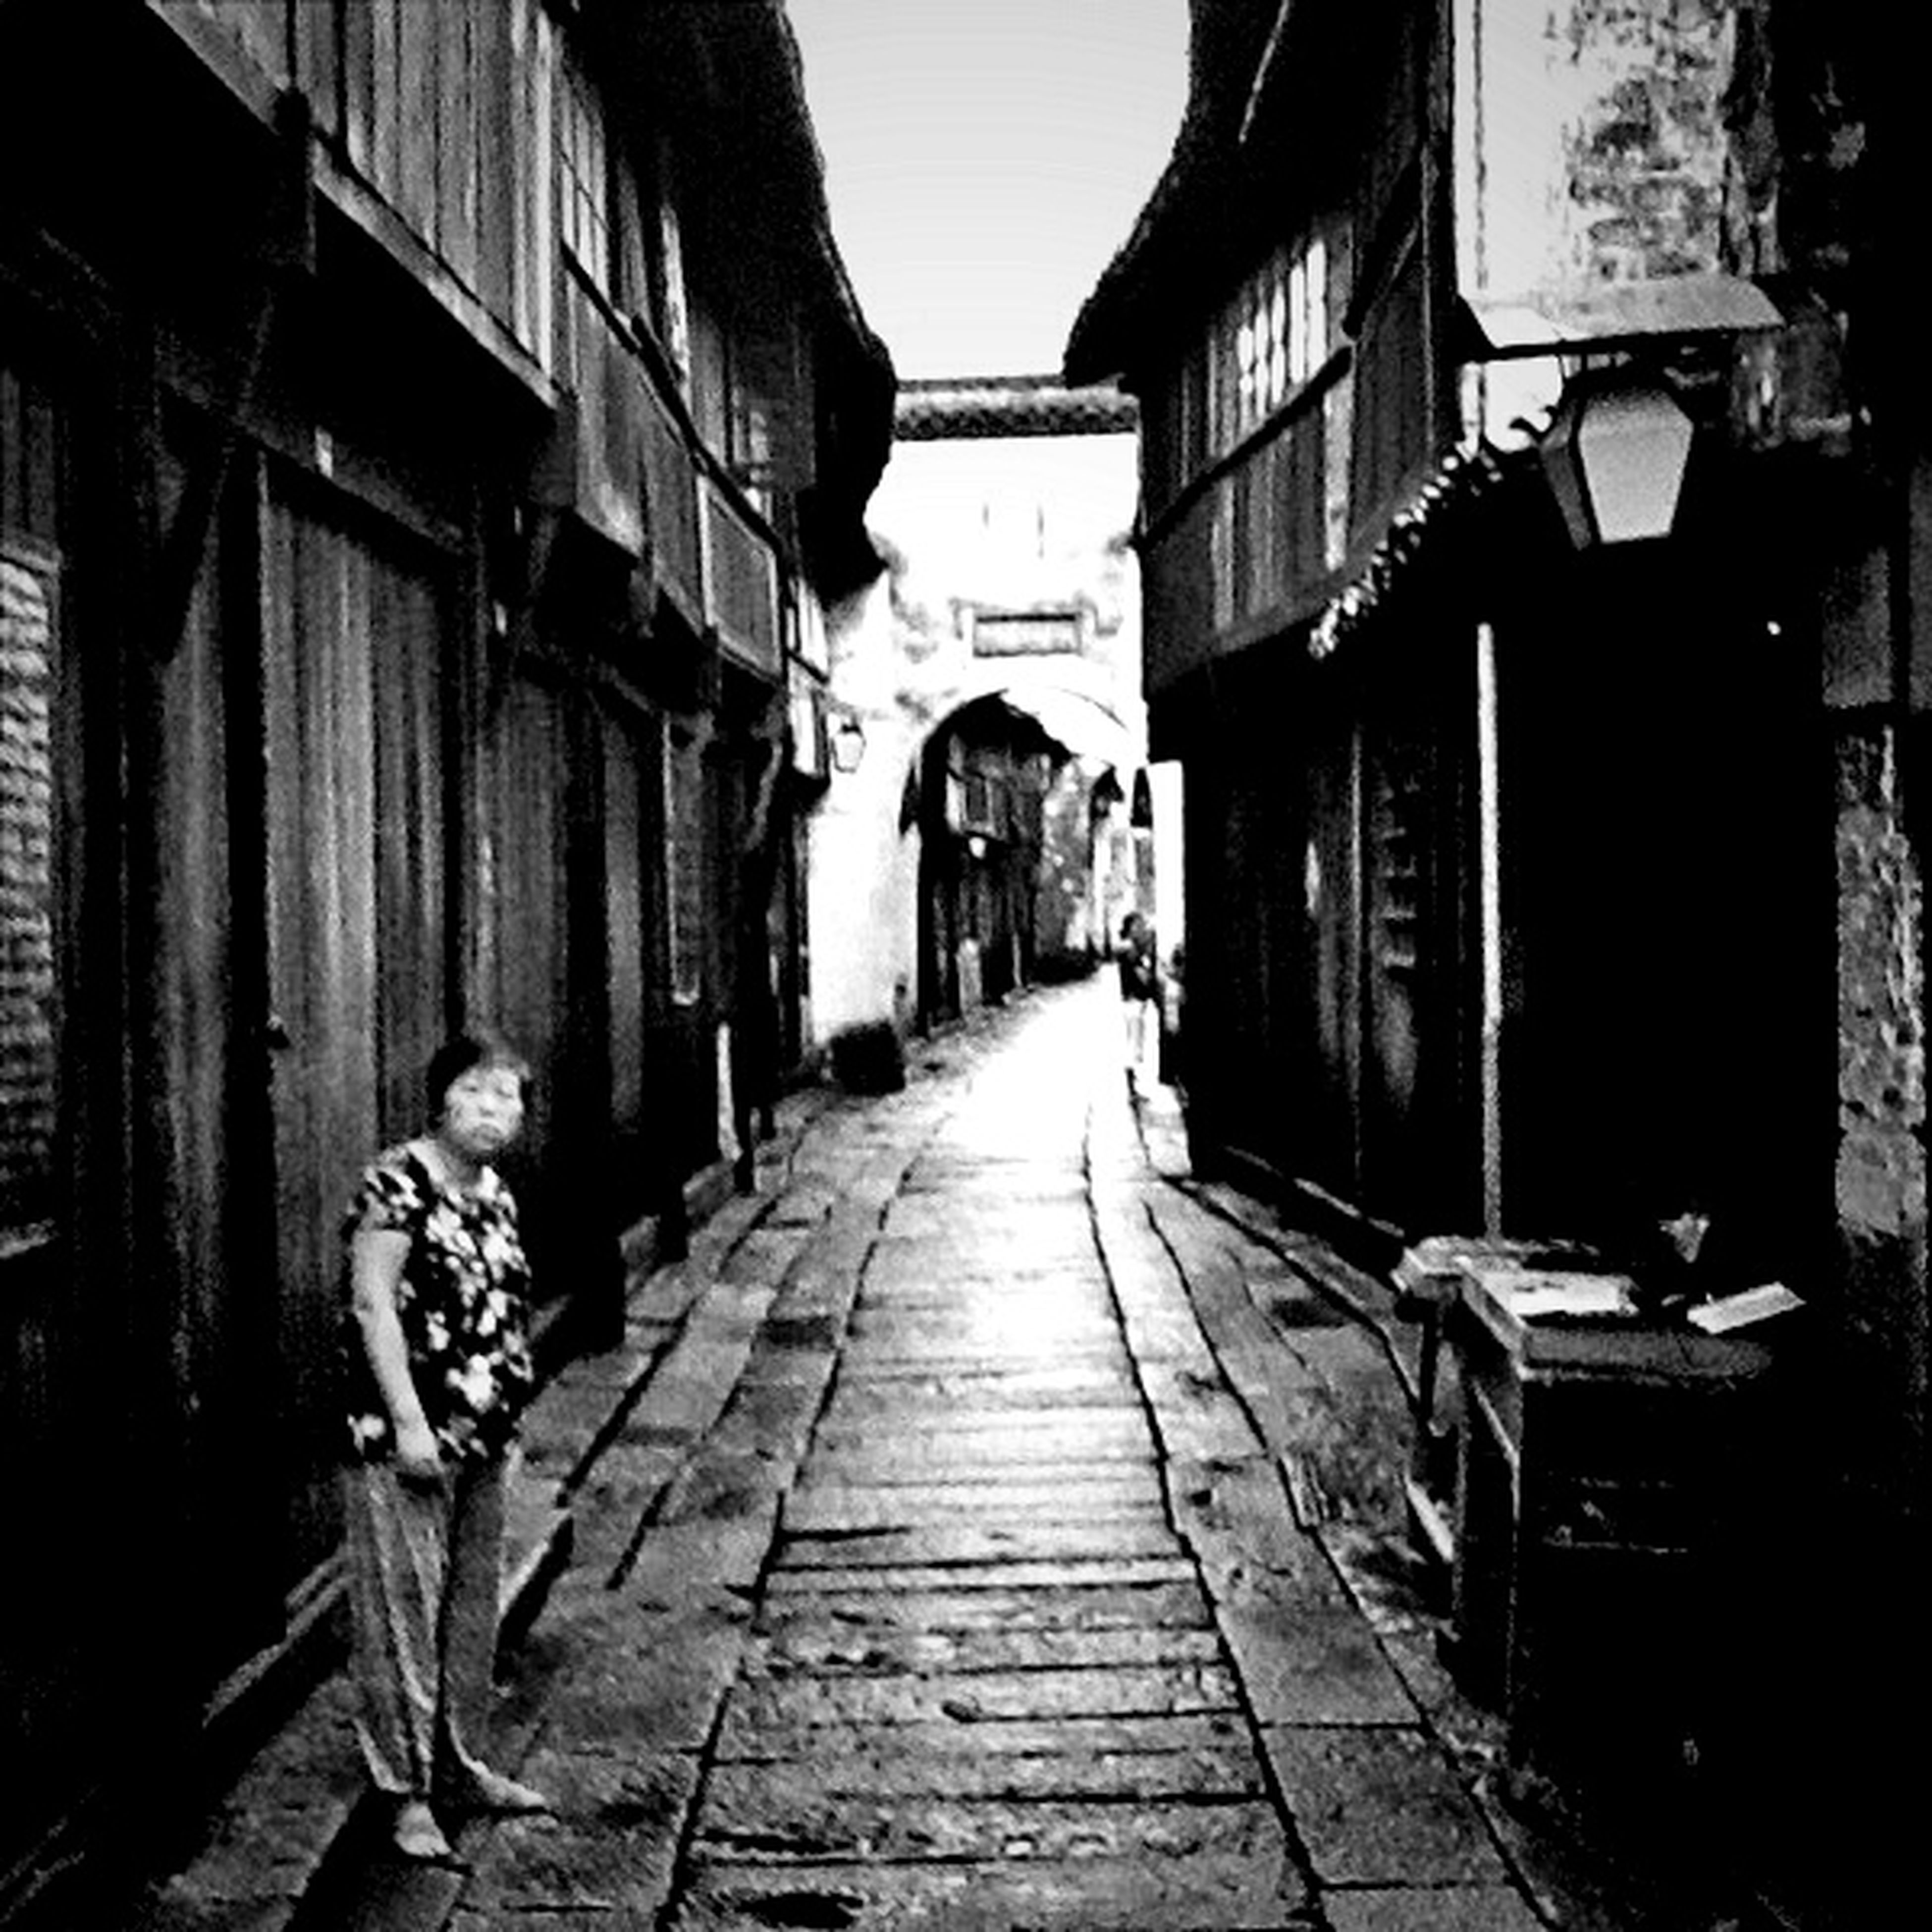 architecture, the way forward, building exterior, built structure, diminishing perspective, narrow, vanishing point, alley, street, transportation, residential building, residential structure, city, building, incidental people, town, house, cobblestone, empty, old town